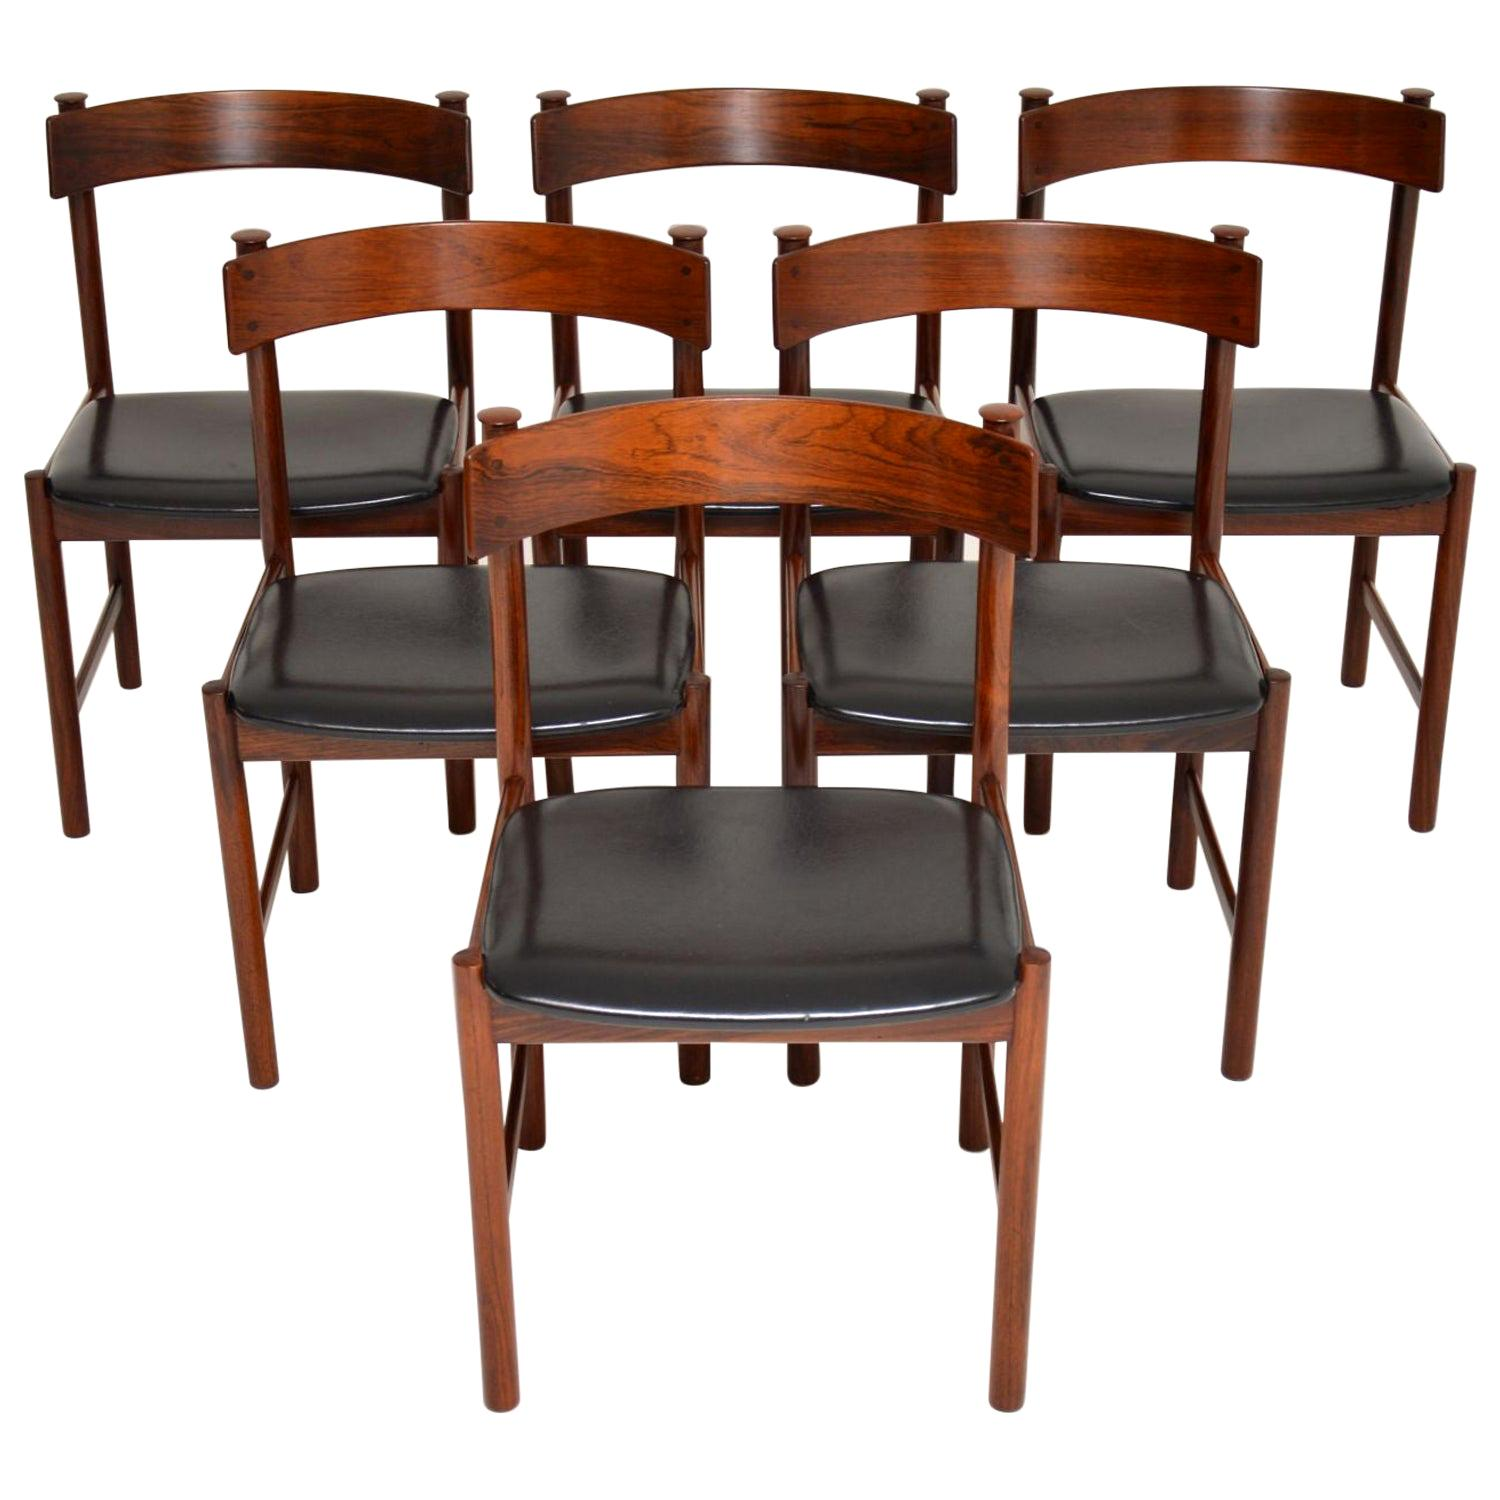 1960s Danish Vintage Dining Chairs, Set of 6